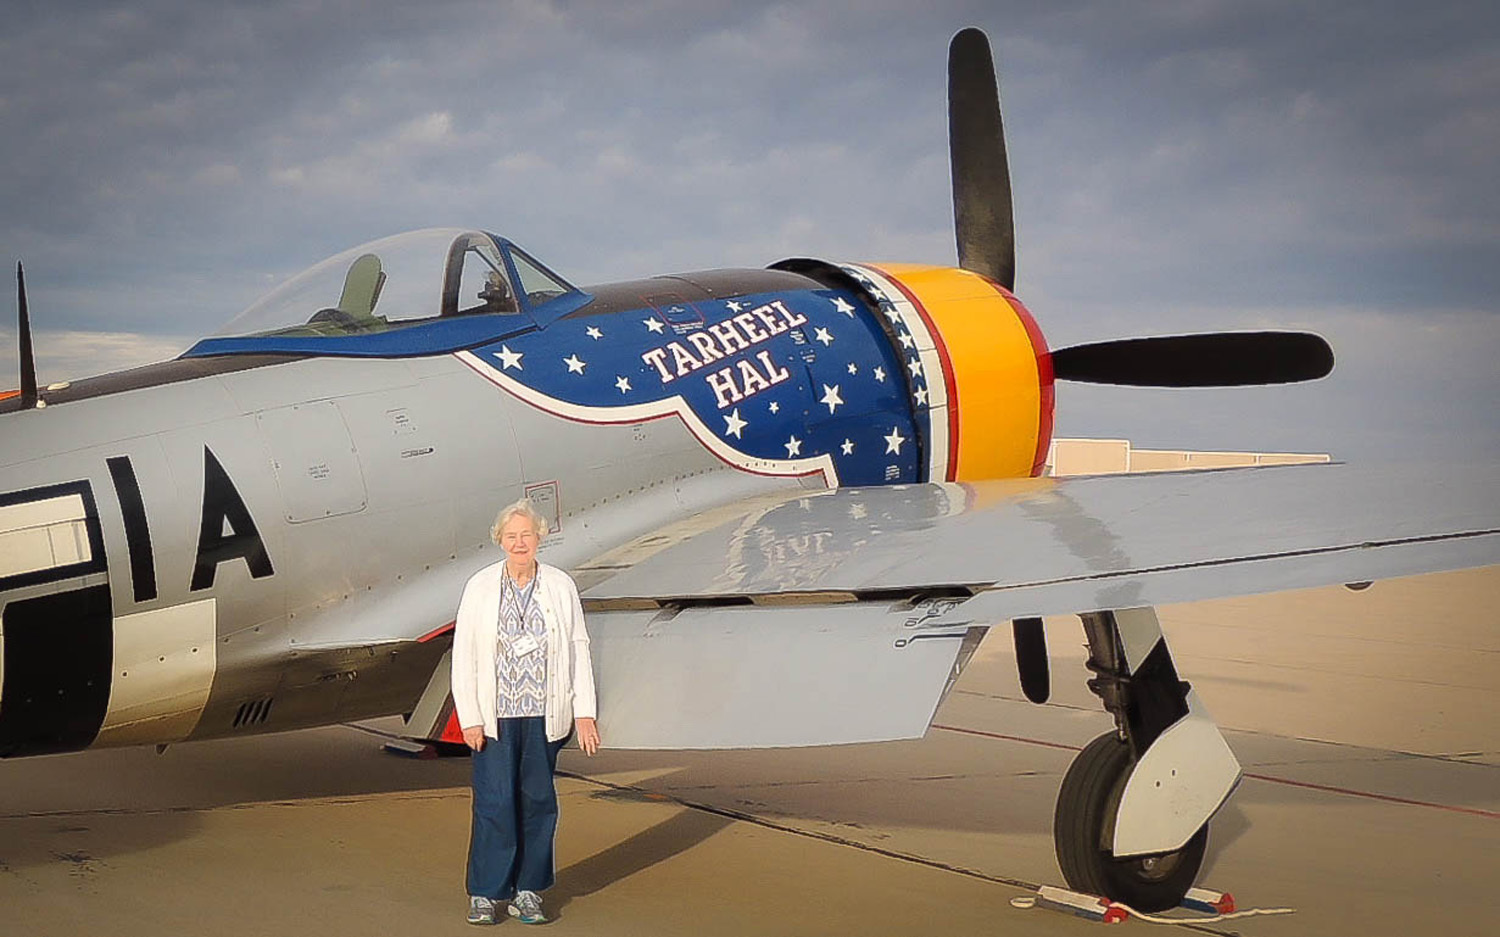 Victoria Thomson stands next to a P-47 Thunderbolt before an Air Force Heritage Flight demonstration on March 6, 2016 at Davis-Monthan Air Force Base, Ariz. Thomson's father, Capt. Carl Ekstrom, was killed during World War II while piloting a P-47. After nearly seven decades, Thomson finally came face-to face with the Thunderbolt. (Courtesy photo)